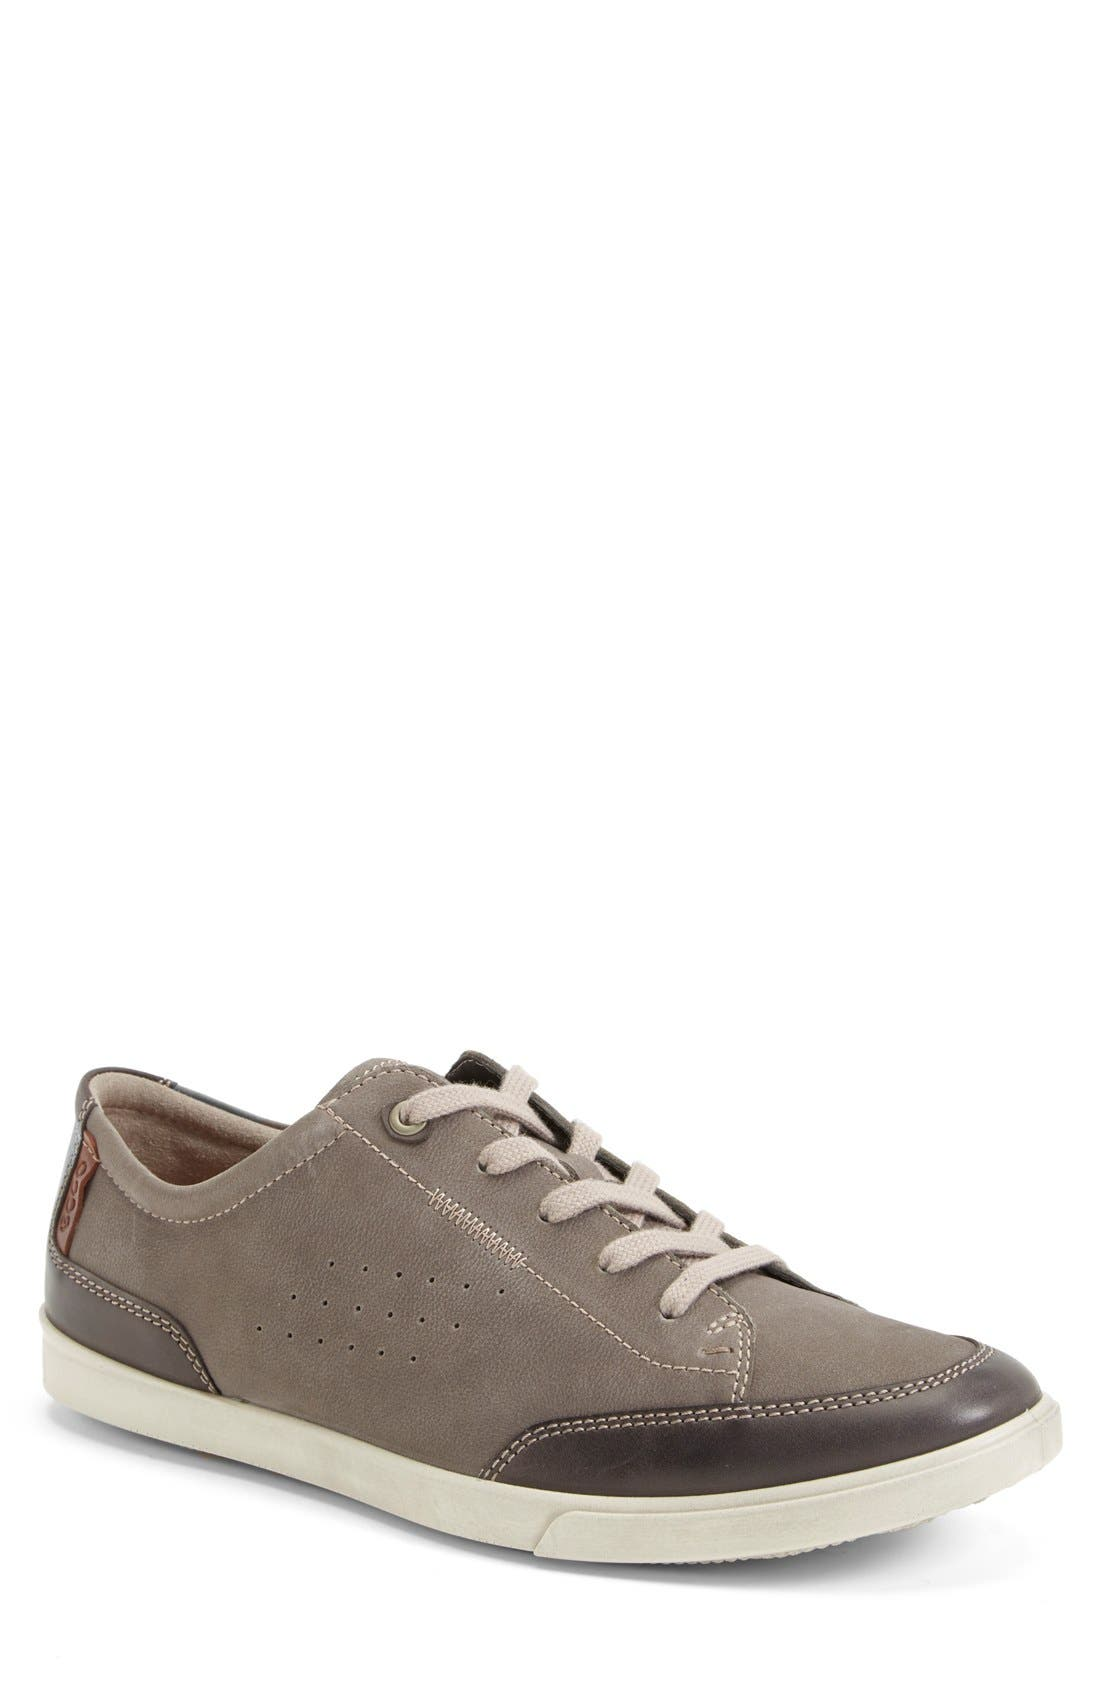 Main Image - ECCO 'Collin' Sneaker (Men)